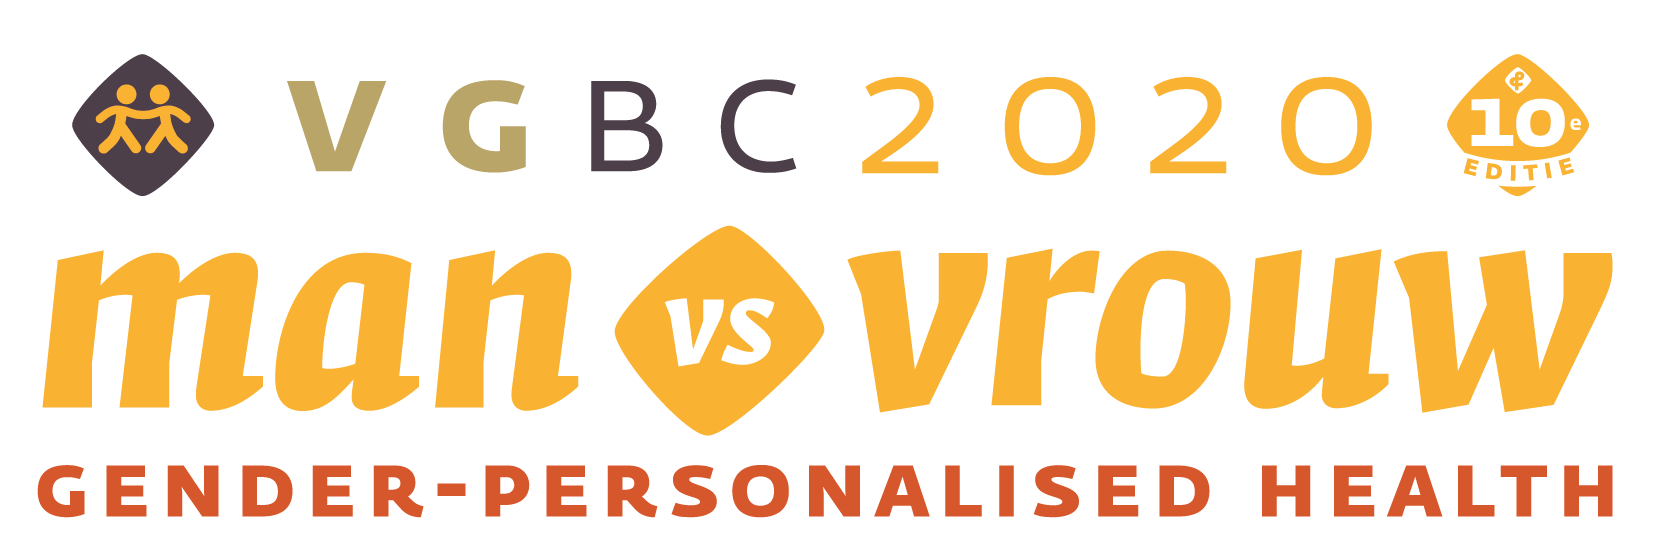 VGBC2020 MAN vs VROUW | gender-personalized health